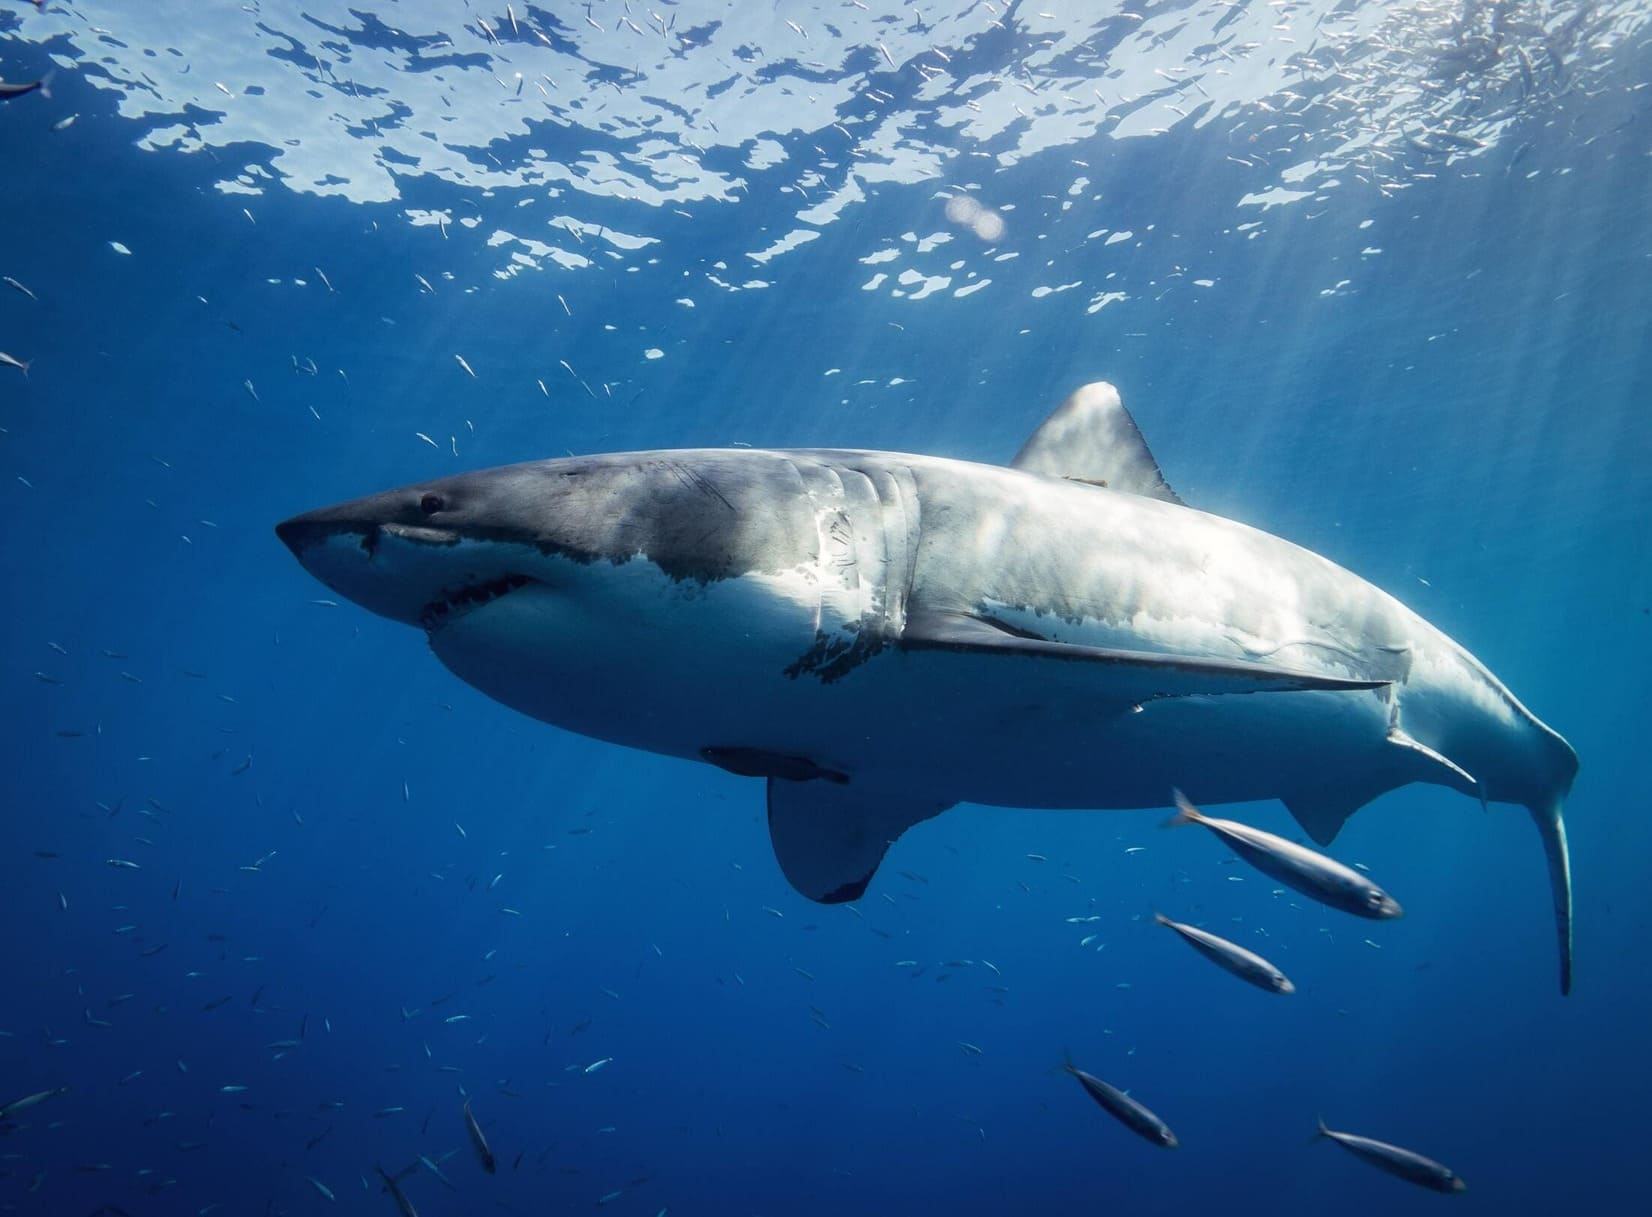 The Great White Shark can be spotted around Guadalupe Island, Mexico